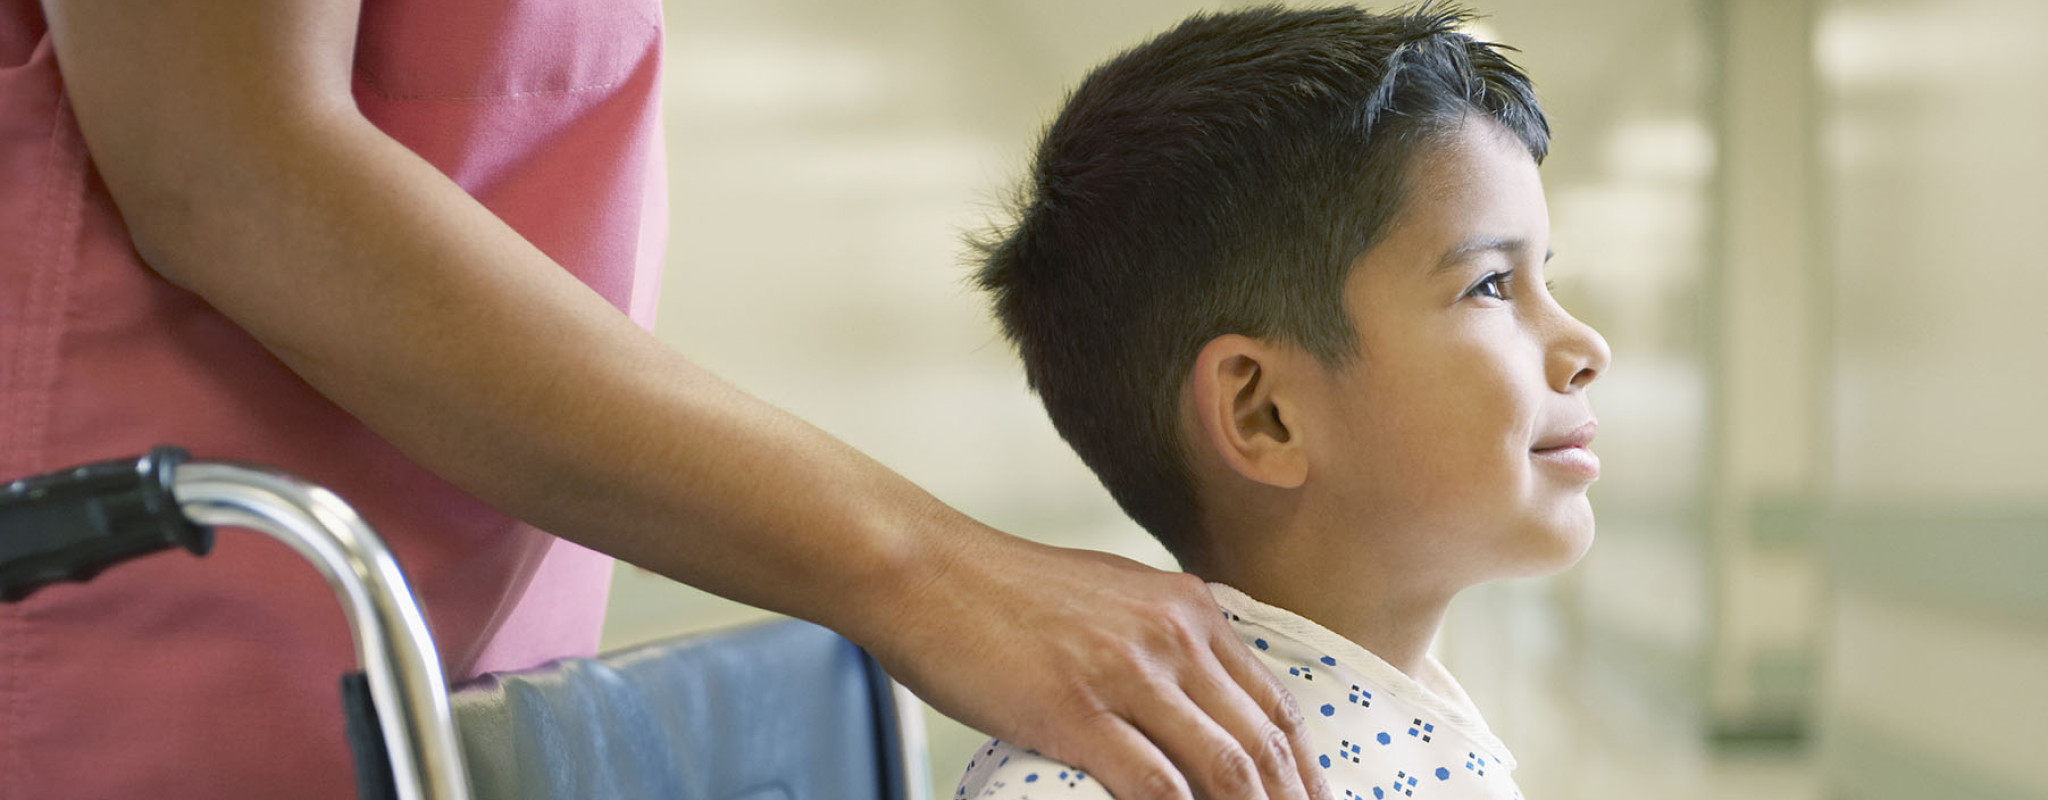 8 Safety Tips for Your Child's Hospital Stay from the experts at Nemours Children's Health System